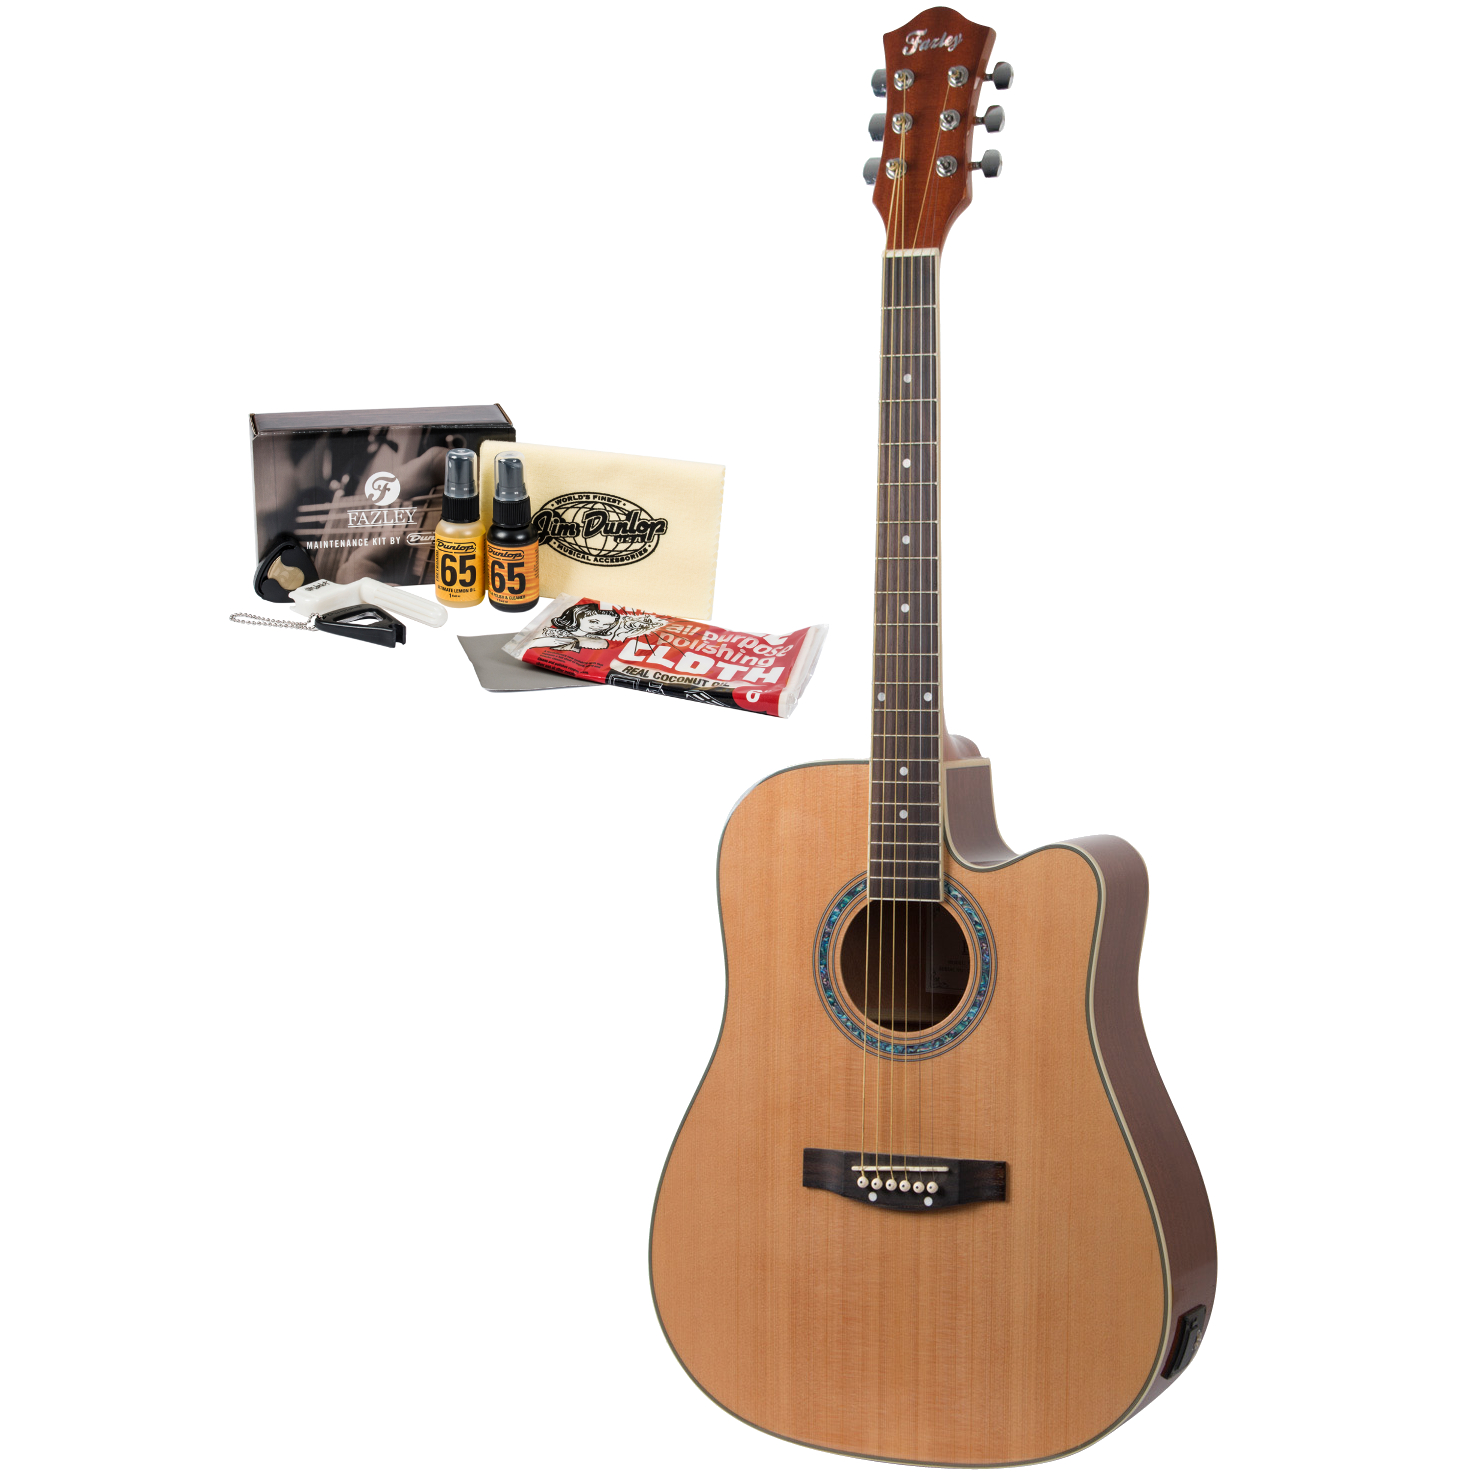 Fazley FE118CN GAFAZ1 guitar with maintenance kit